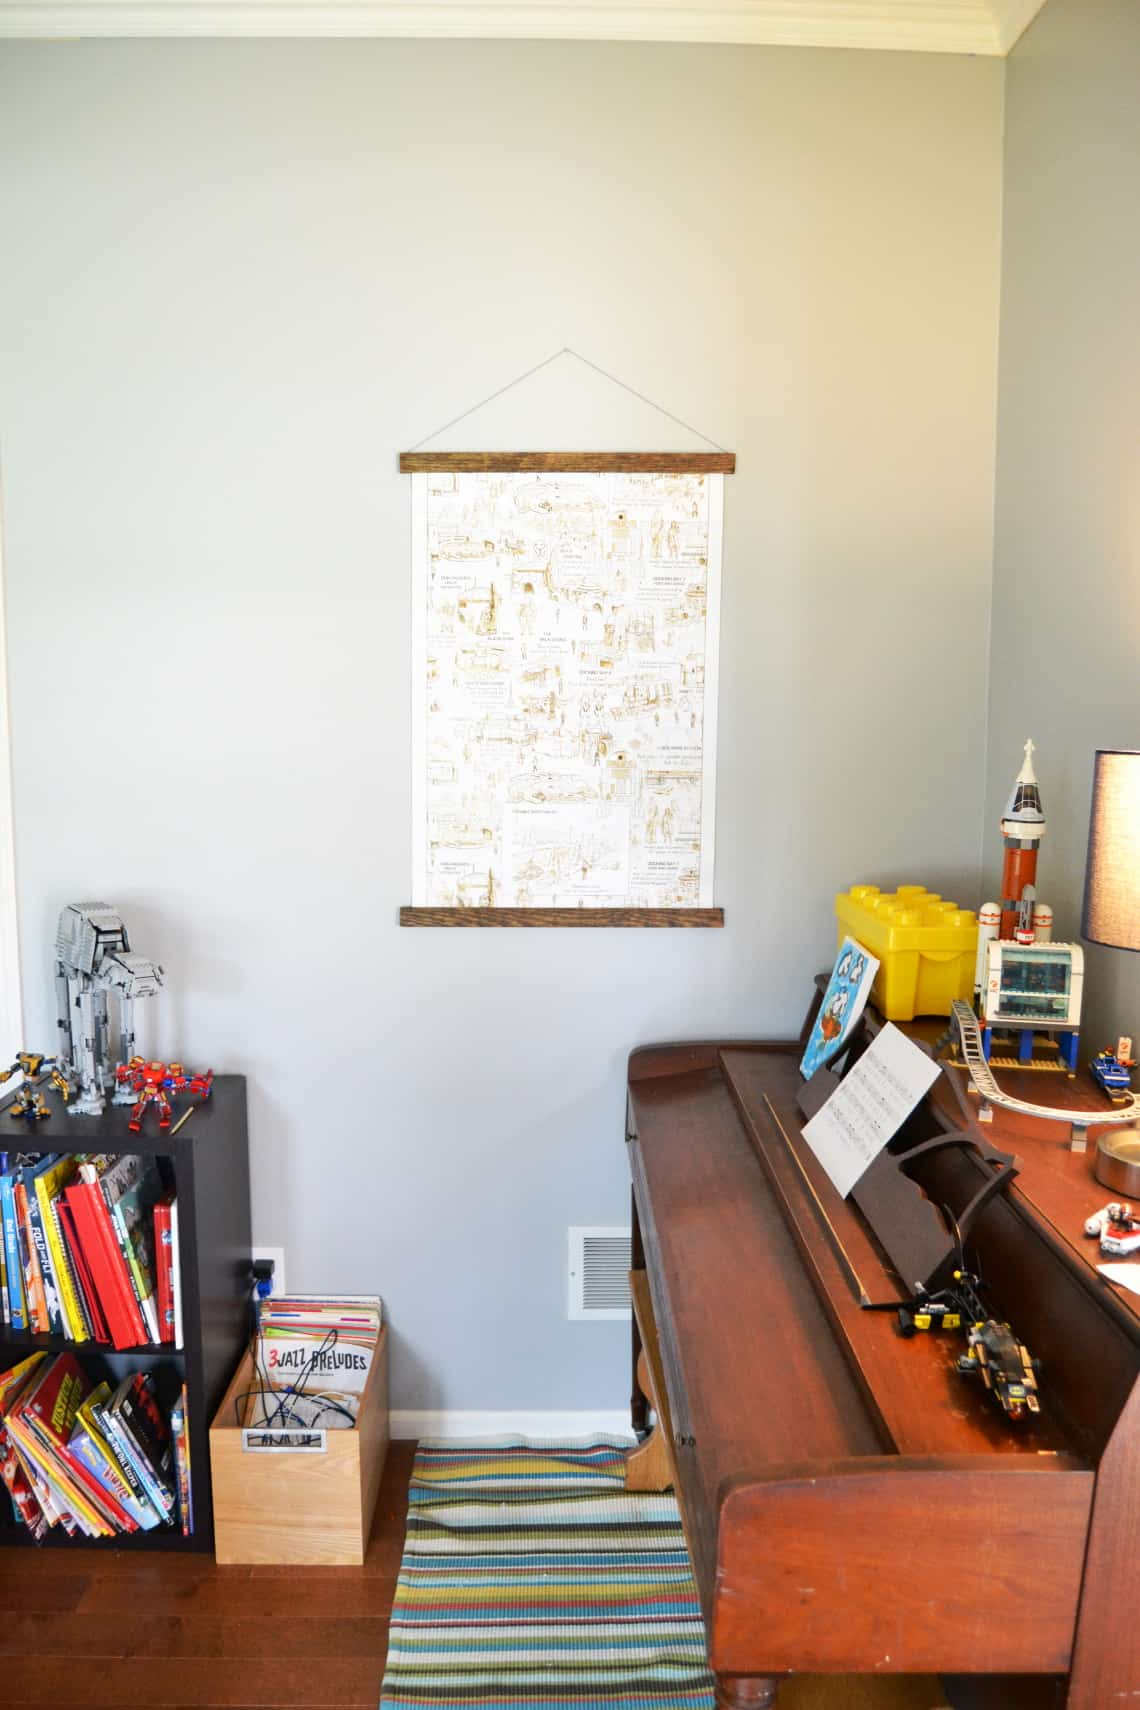 Make a DIY magnetic poster hanger by following this simple tutorial. This is a good way to display posters that you may change in the future.